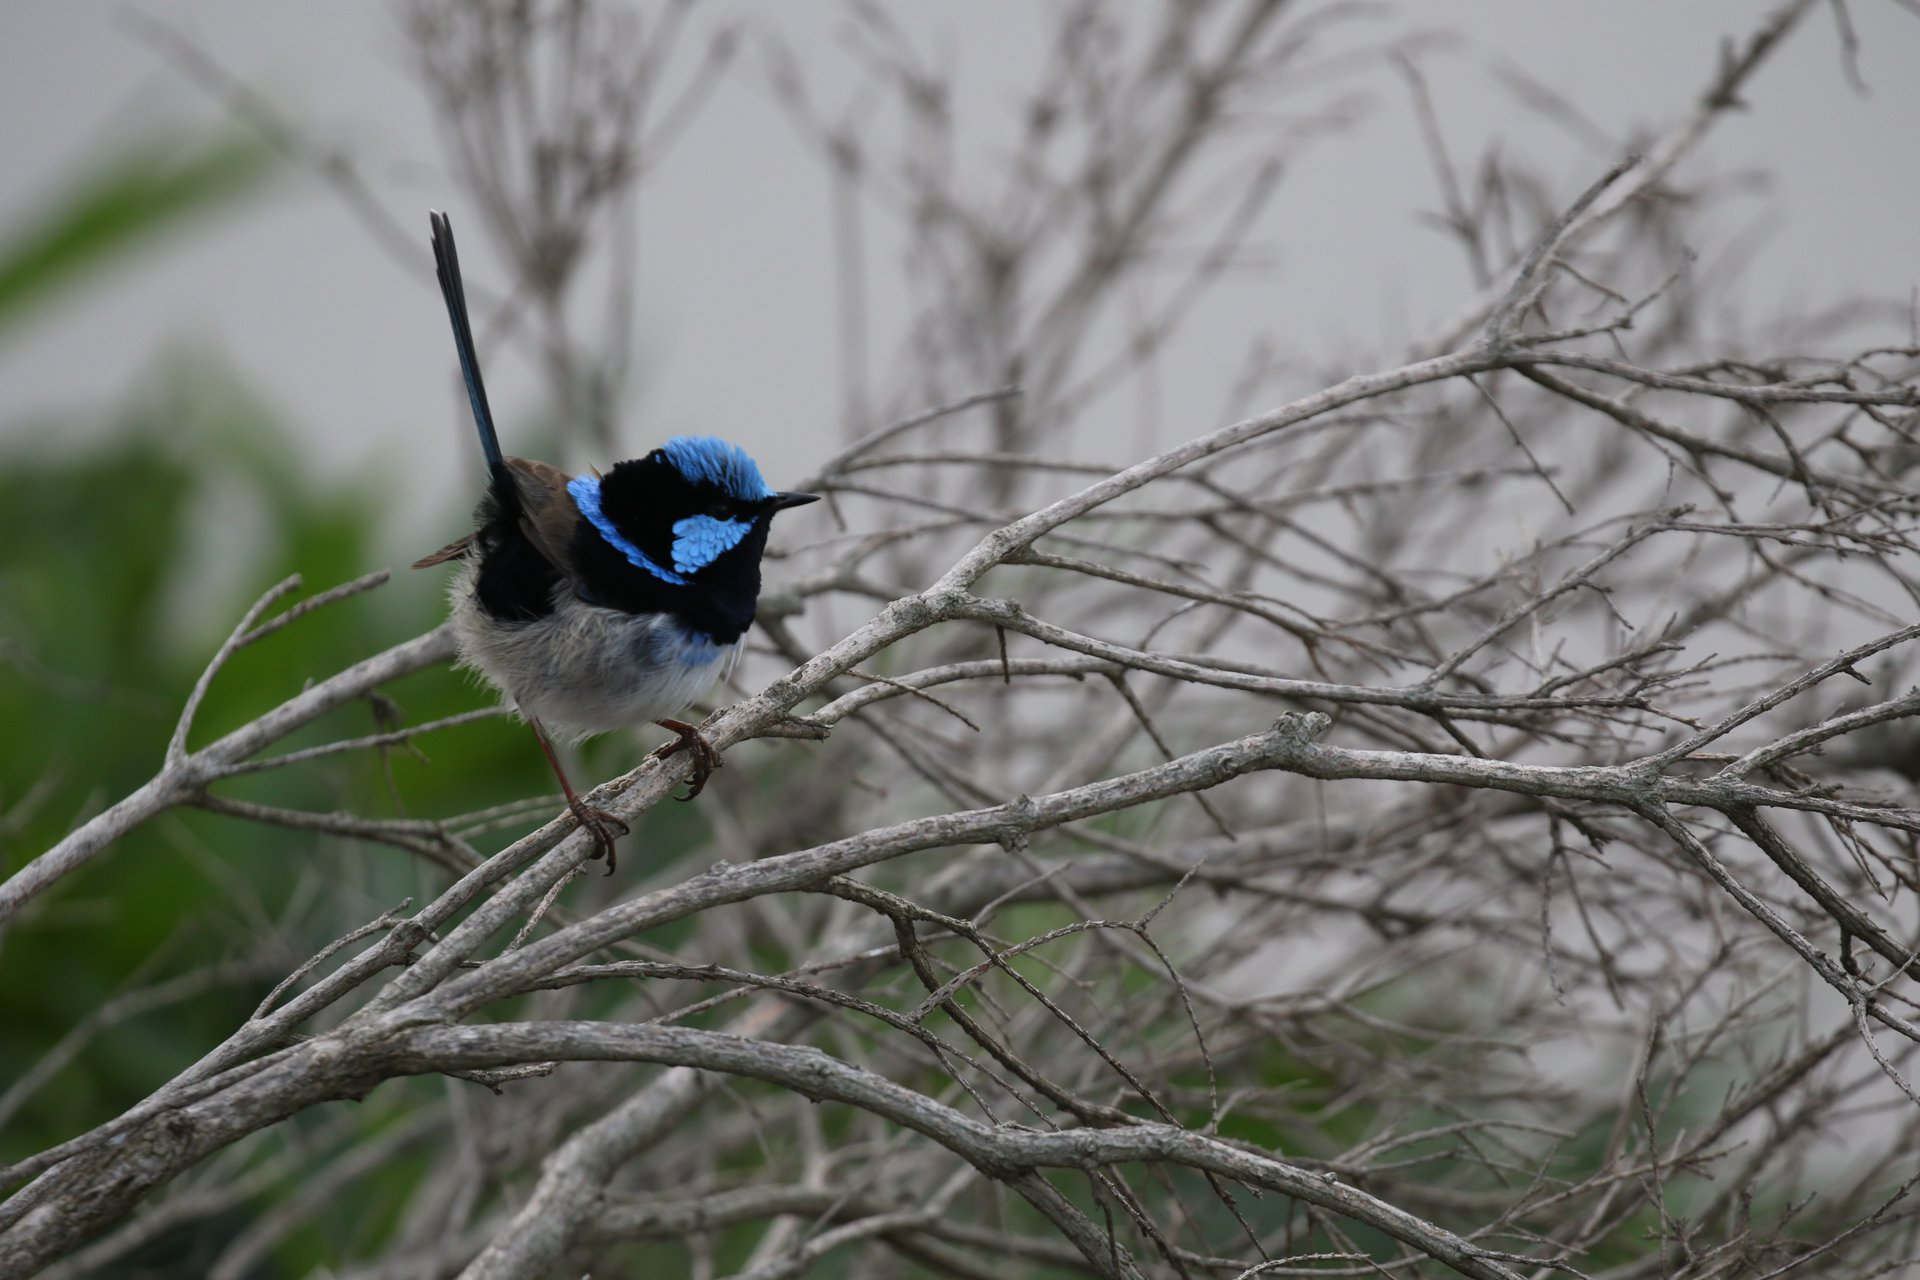 On the tail of the malurid wrens